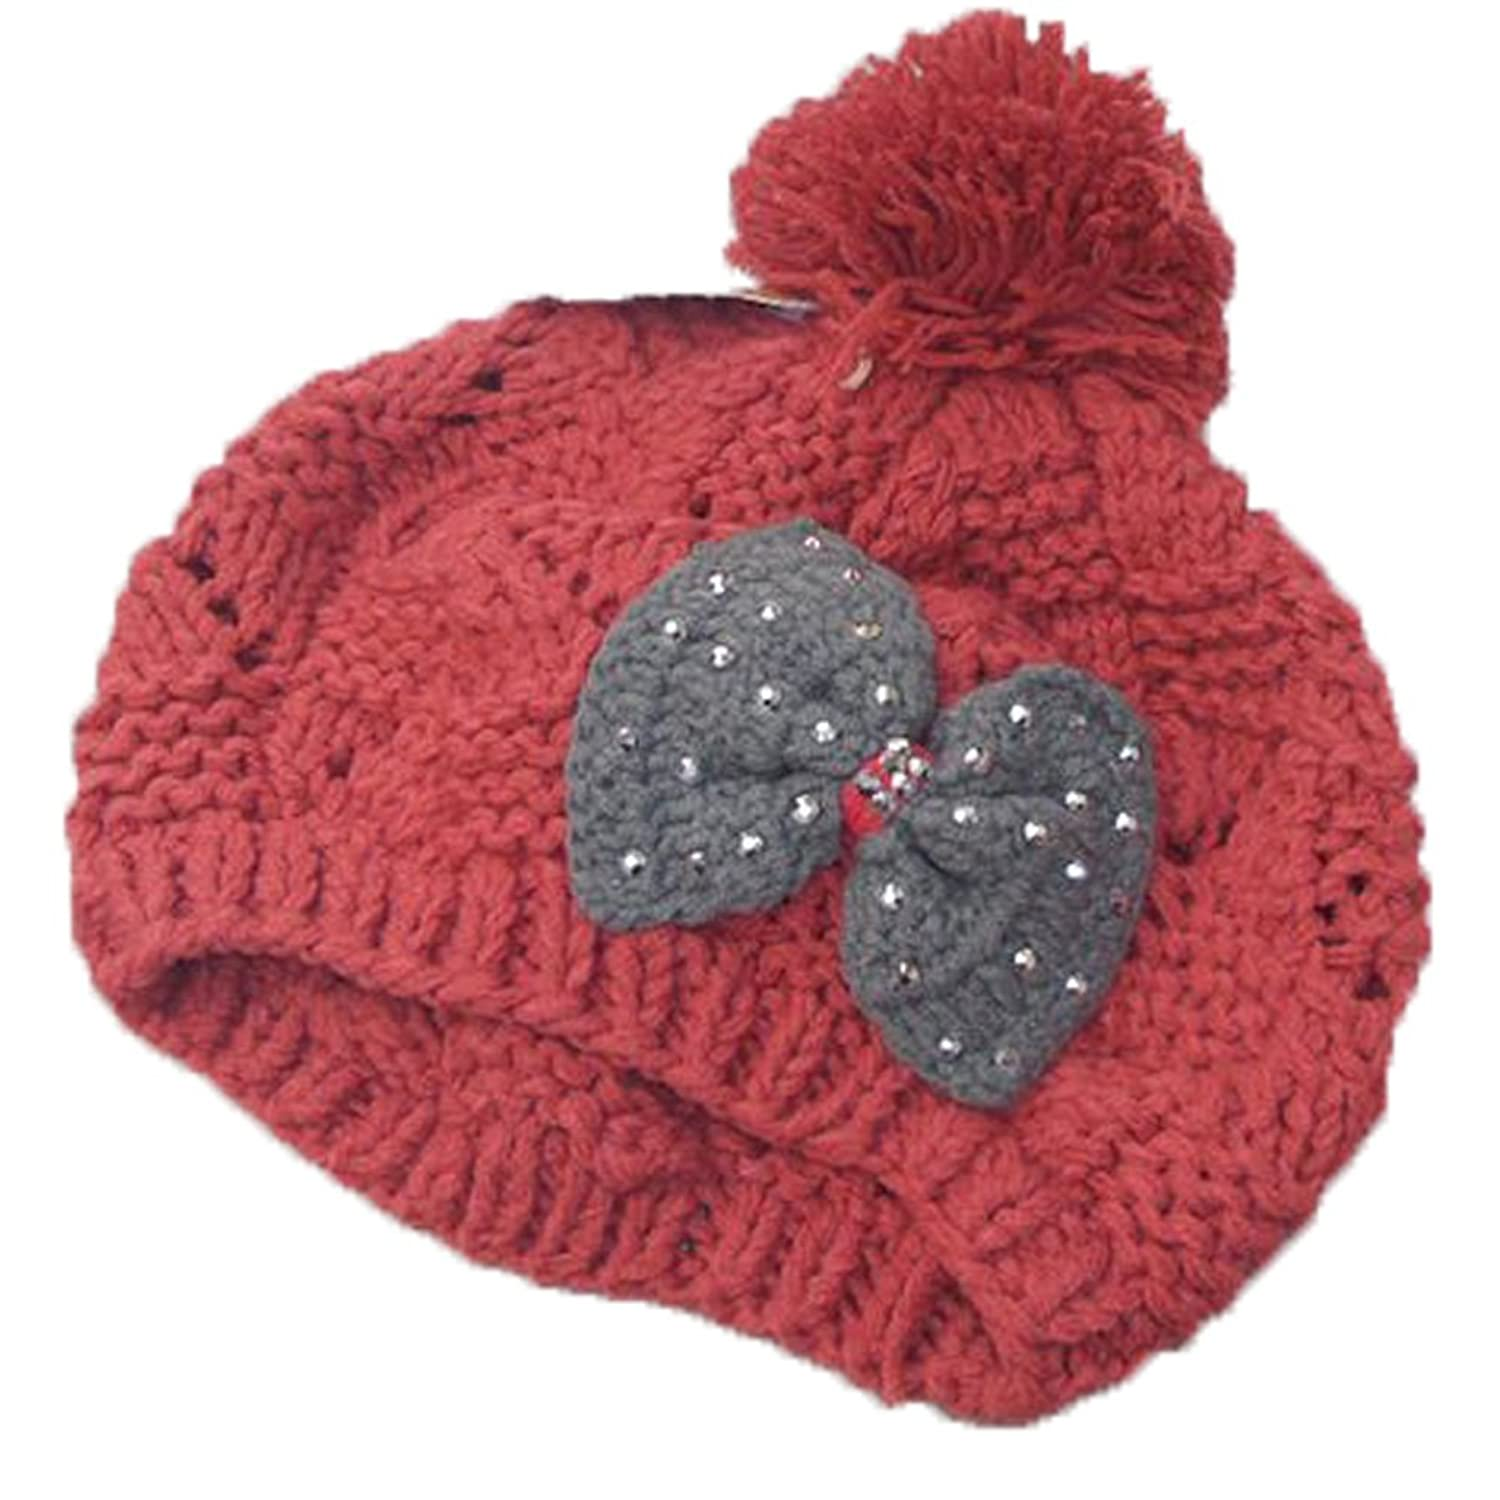 Surker Womens Bows with Diamond Knitted Warm Hat CL02016